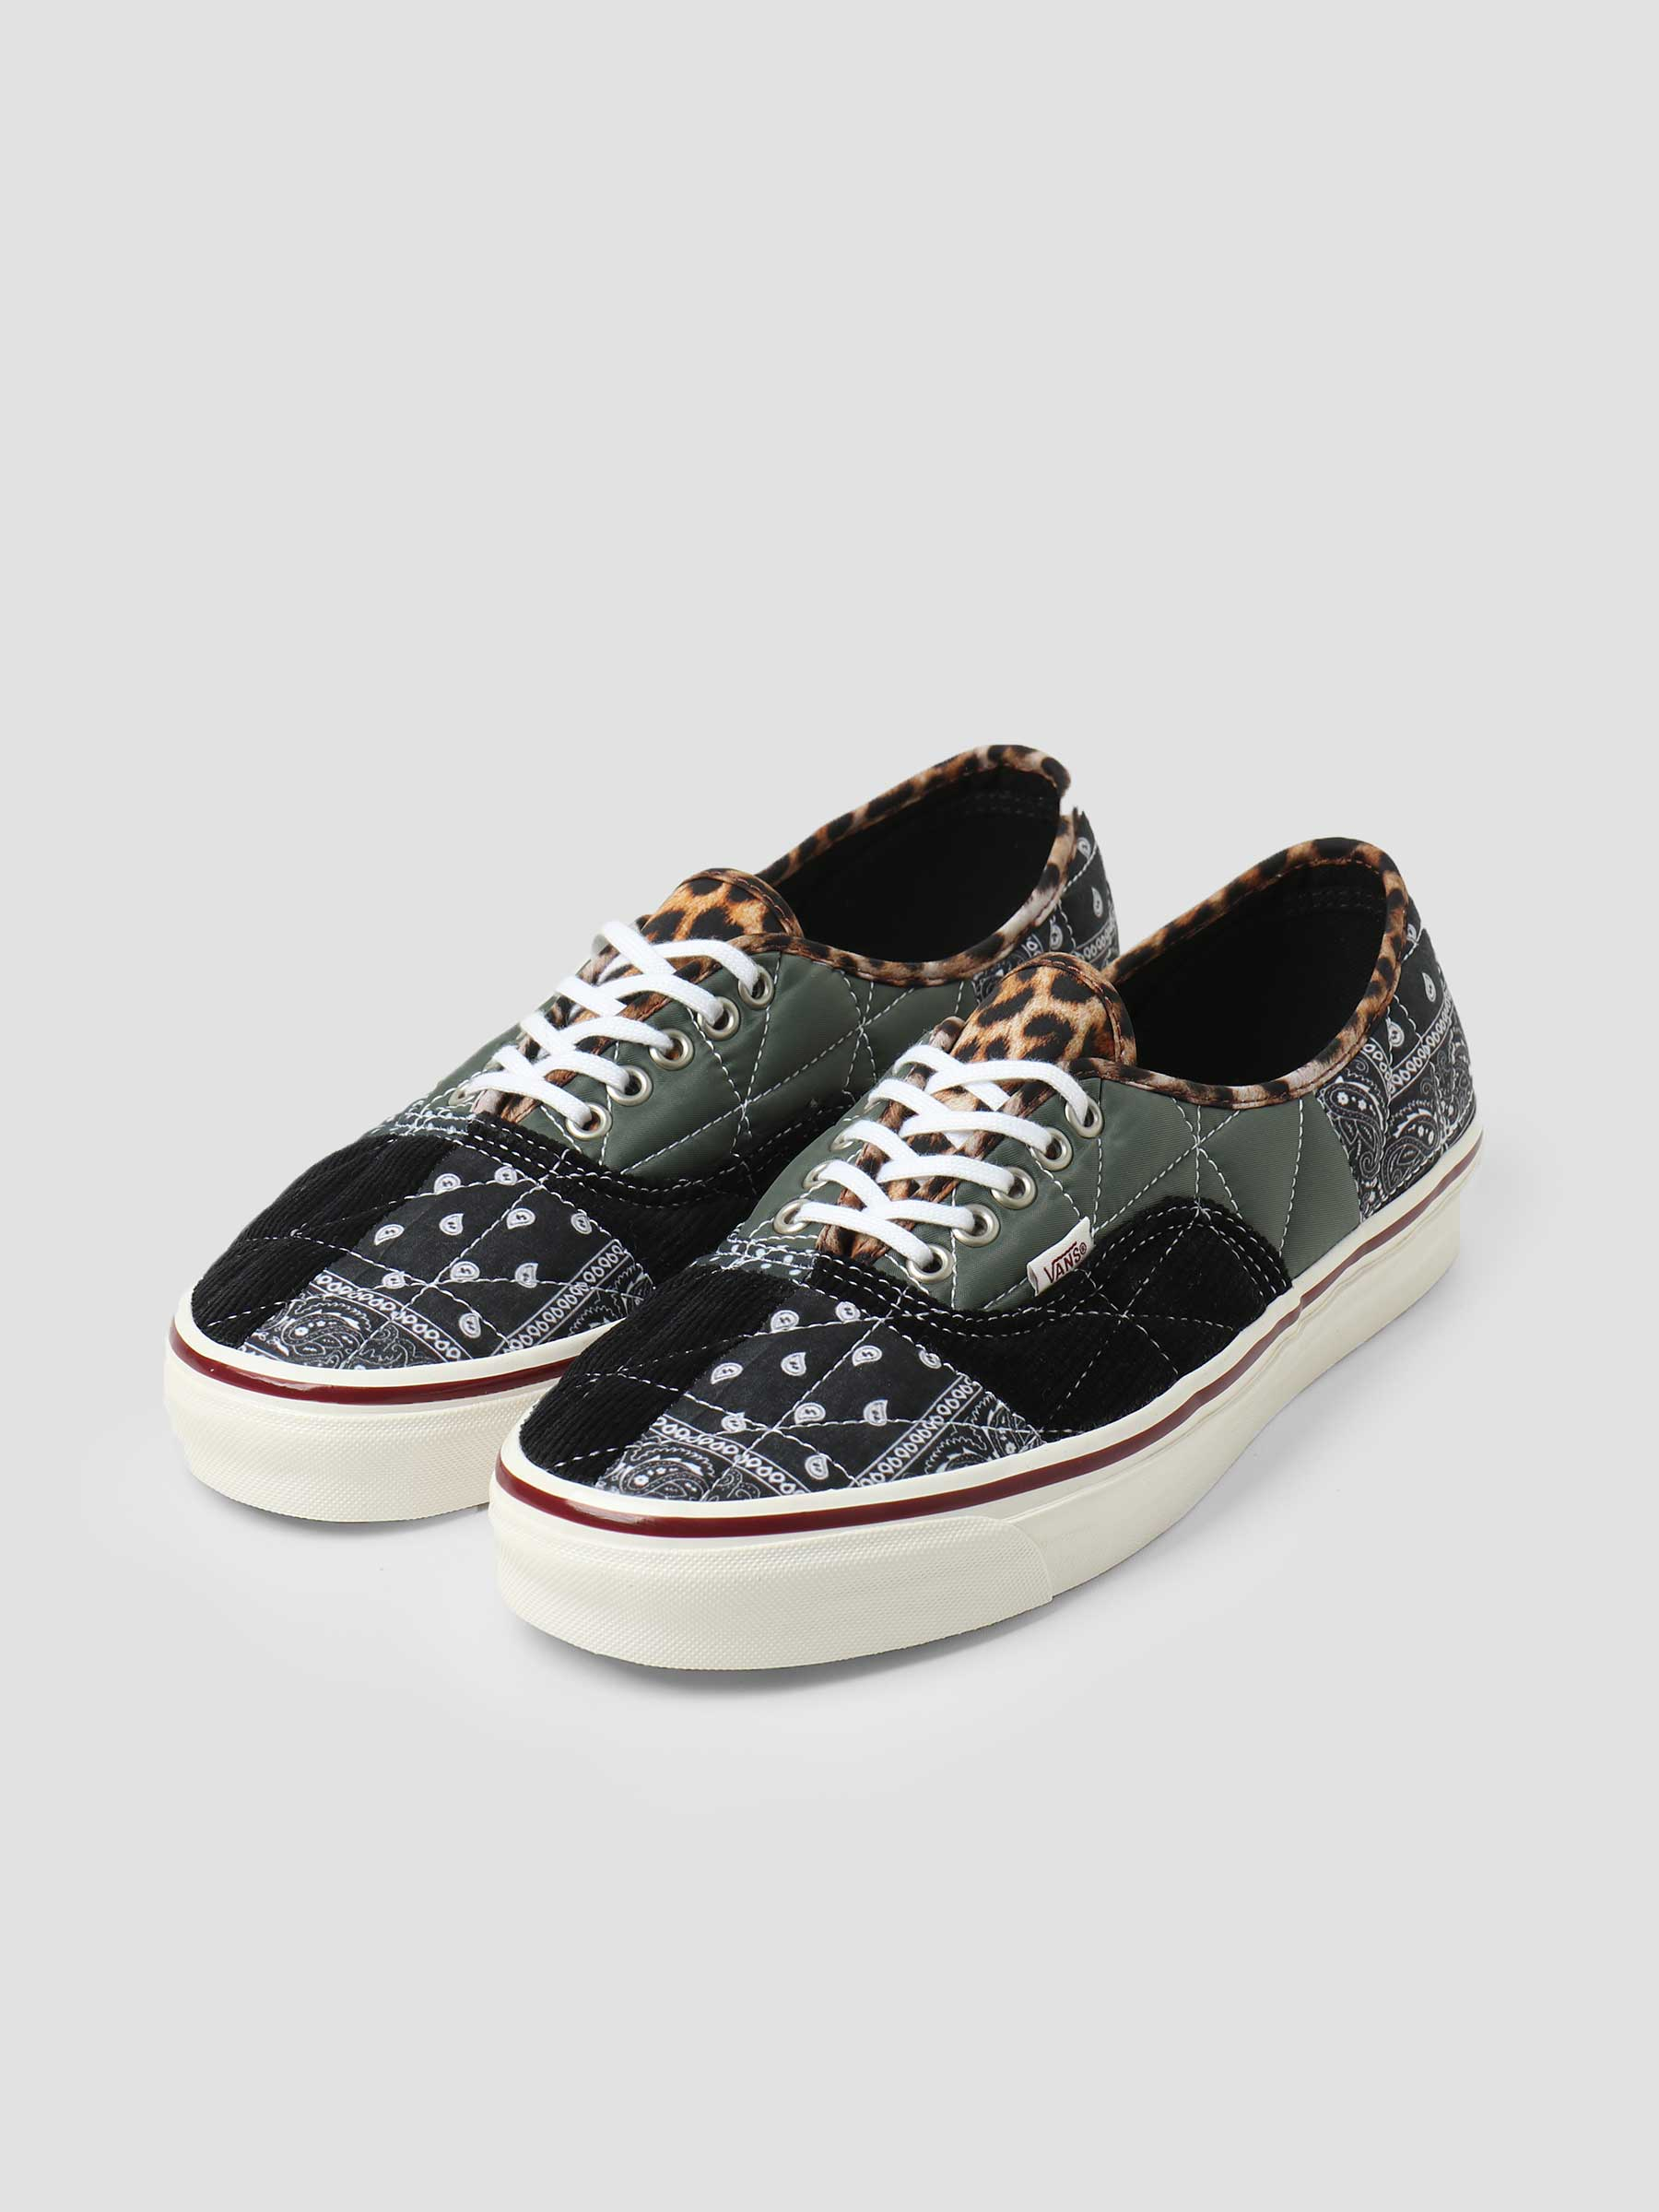 UA Authentic 44 DX PW Anaheim Factory Quilted Mix VN0A54F99GU1